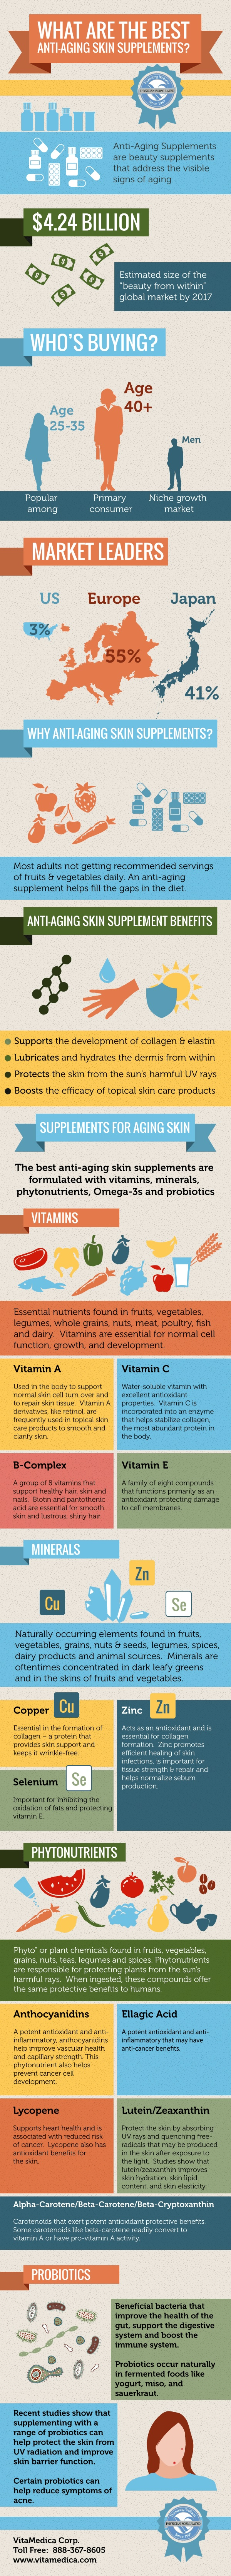 best-antiaging-skin-supplements--what-to-look-for-infographic_524a0bc119028